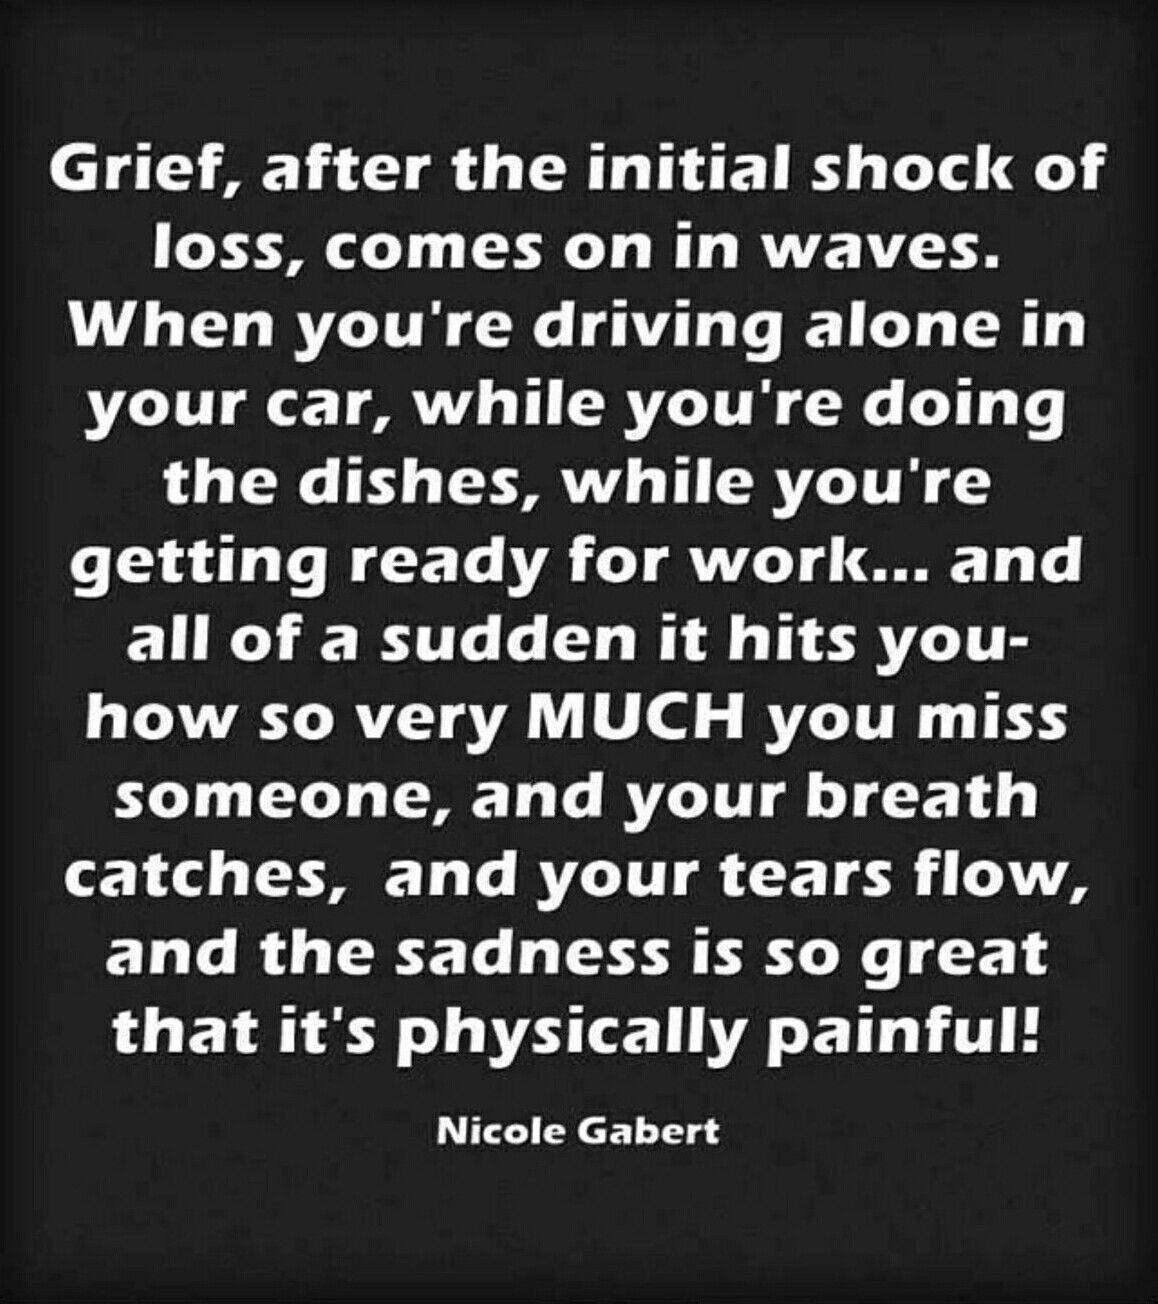 Quotes About Losing A Loved One Pingolden Treasure On Grief And Loss  Pinterest  Grief